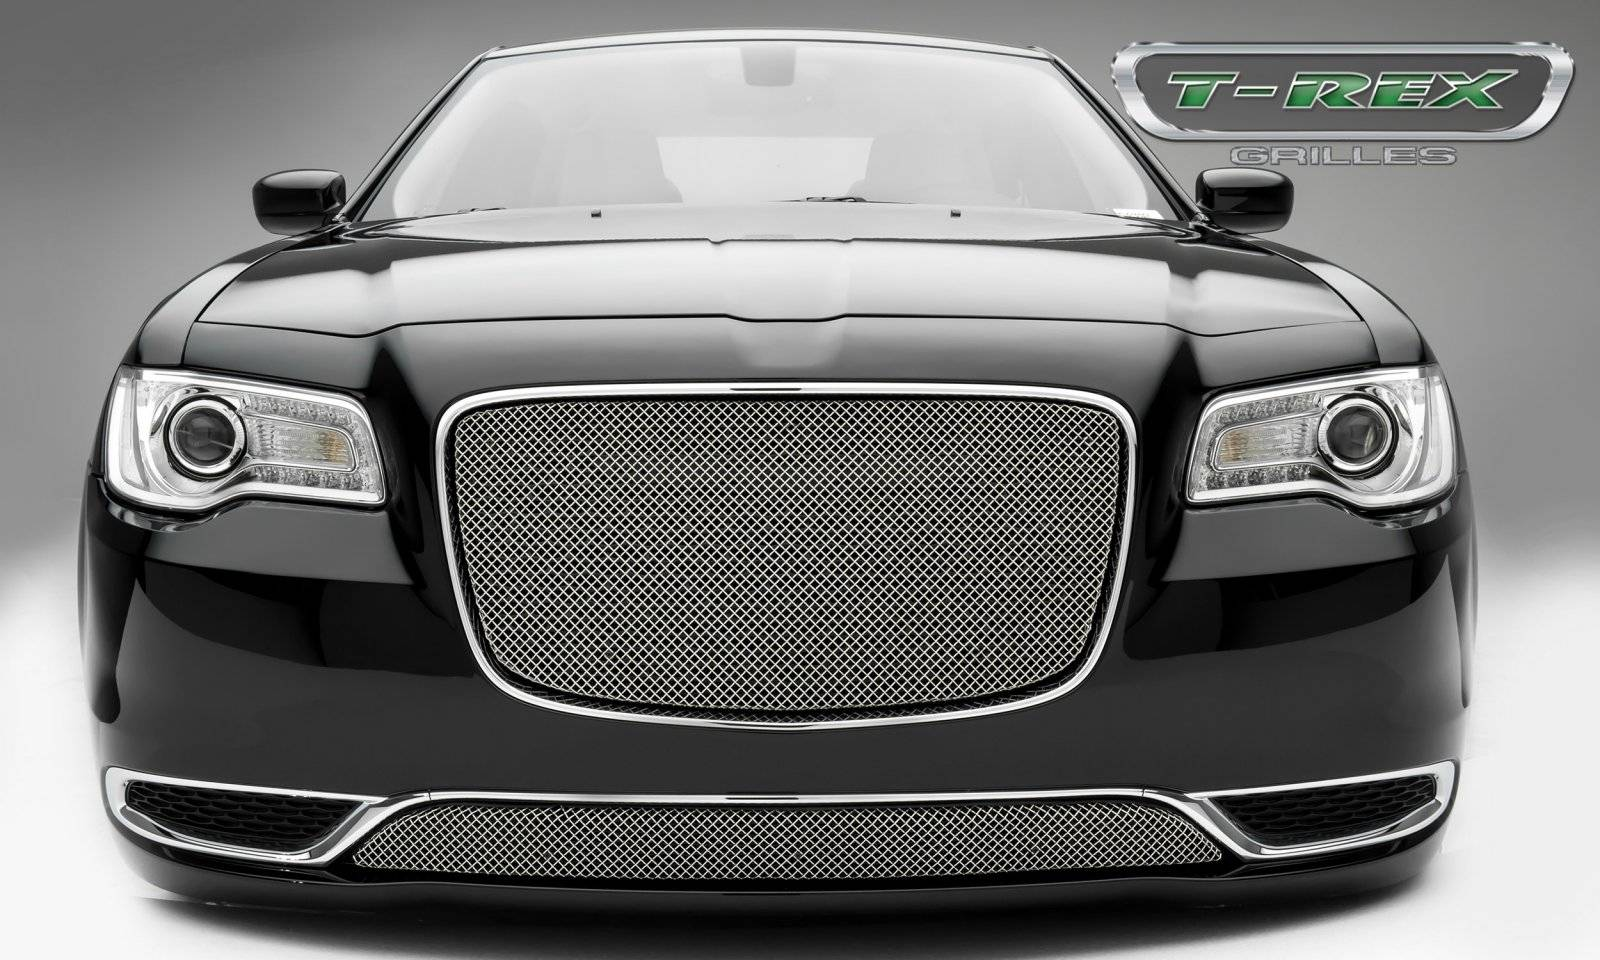 T-REX Grilles - Chrysler 300 - Sport Series - Main Grille Overlay  with Chromed  Stainless Steel - Pt # 44436